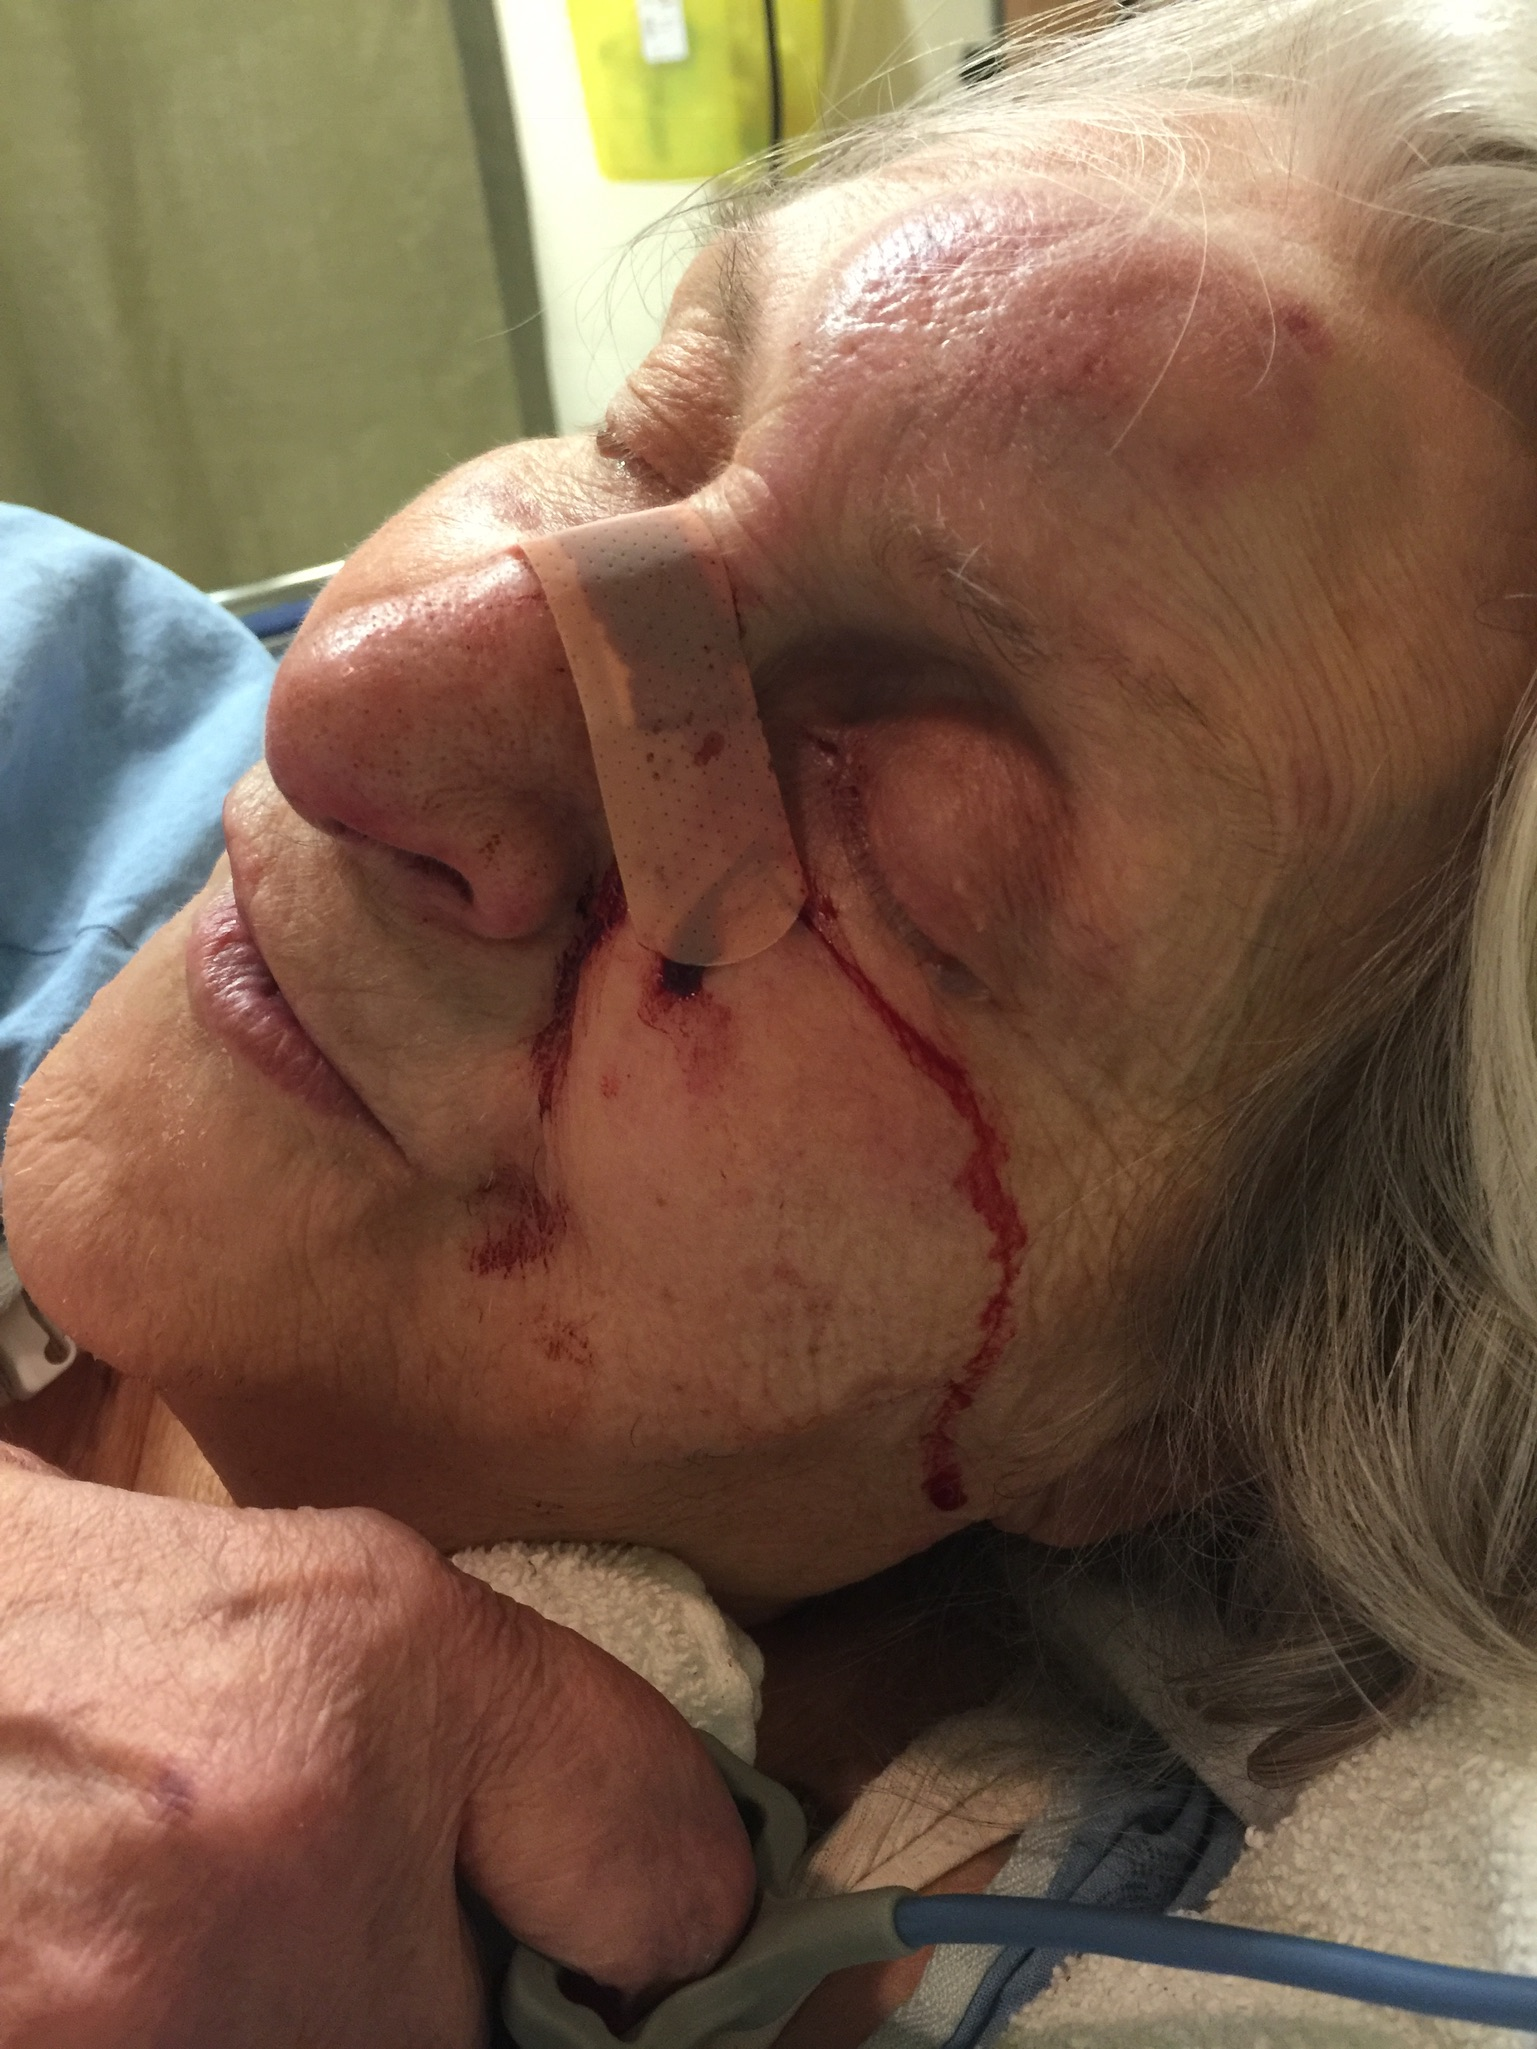 Our mother, who has frontal lobe dementia, got out of bed one night and fell. She broke her nose and cheek bone. It was the janitor who found her bleeding on the floor! We got noticed of this event hours later. Till this day, we have no idea how much time she bleeding and in major pain before being found. If we would have had the solution Kindnest is offering now, we would have known right away because of motion sensor and alert notification to our iPhones/iWatch.